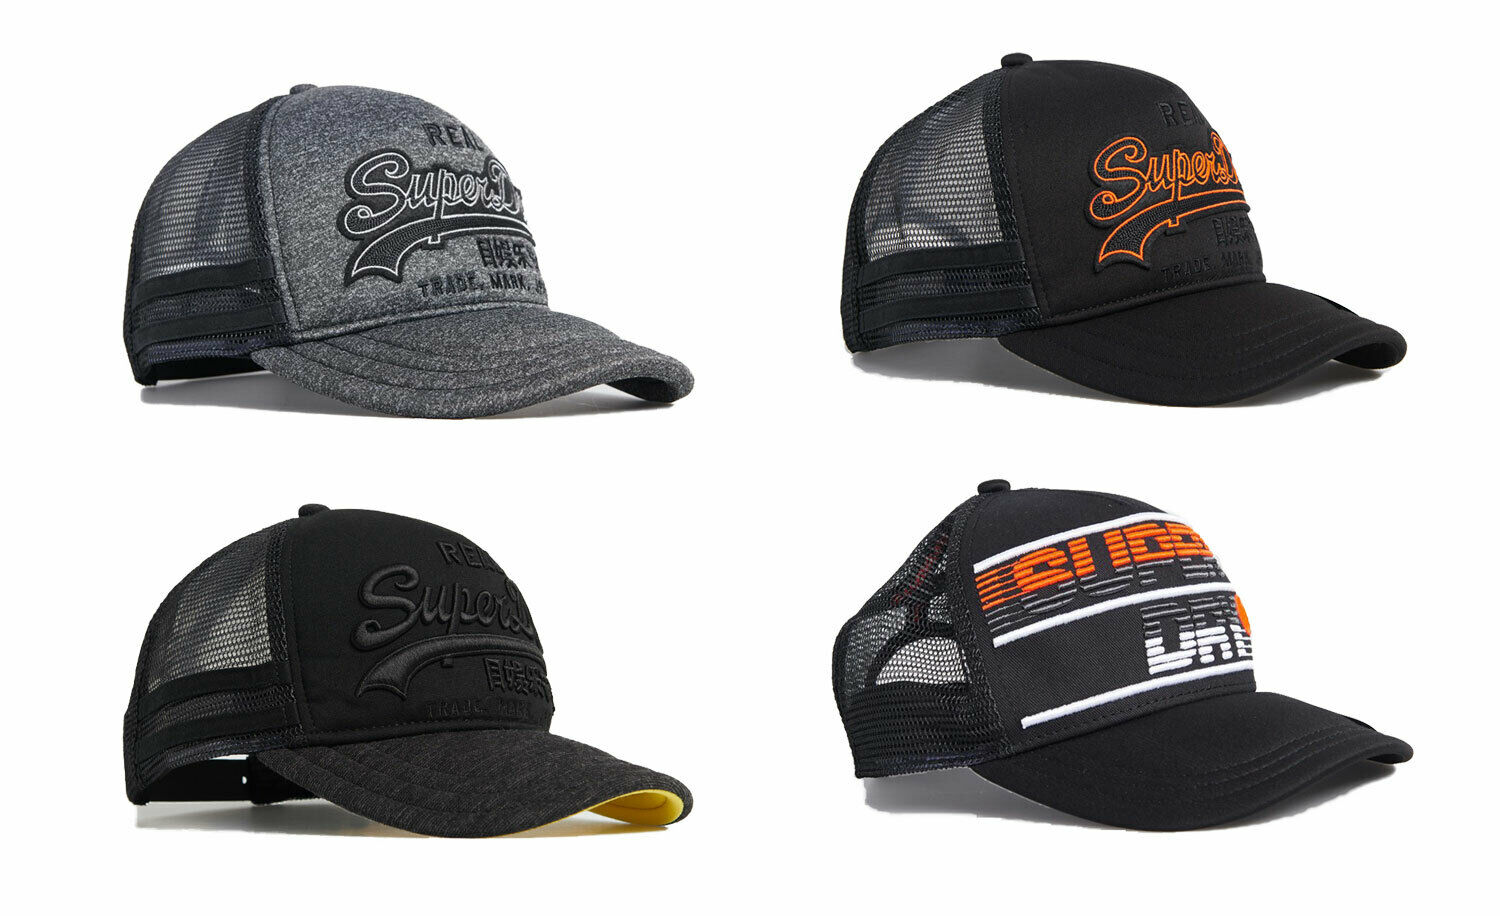 Classic Baseball Cap,PrestonPlayz-Art Adjustable Two Tone Cotton Twill Mesh Back Trucker Hats Black